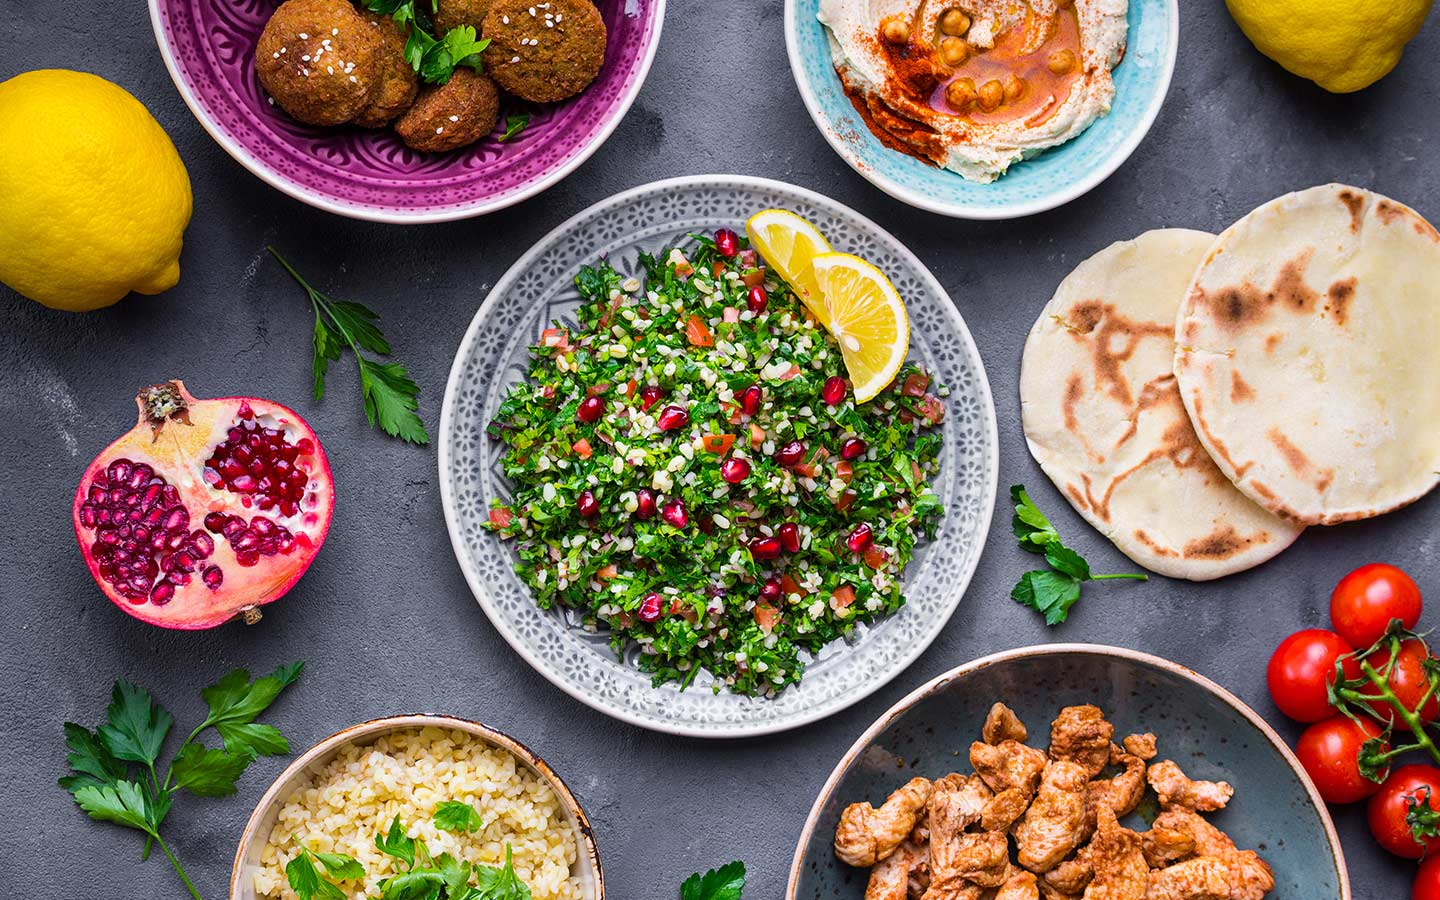 View of various Middle Eastern dishes